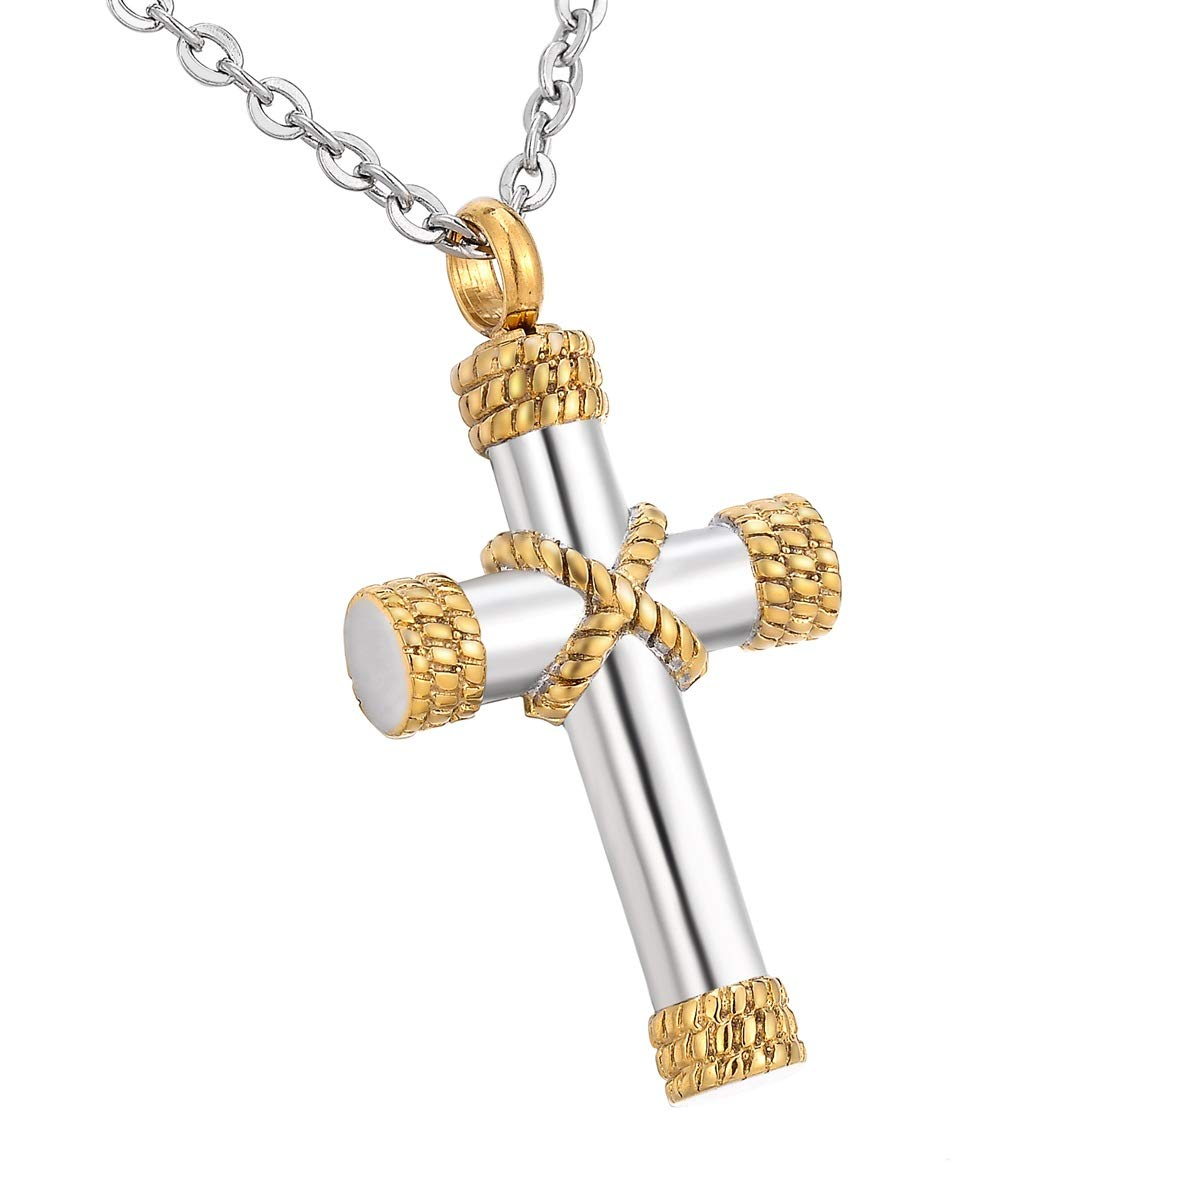 HooAMI Cremation Jewelry Cross Pendant Memorial Urn Necklace for Ashes Best-shopping LJ0AA04UR